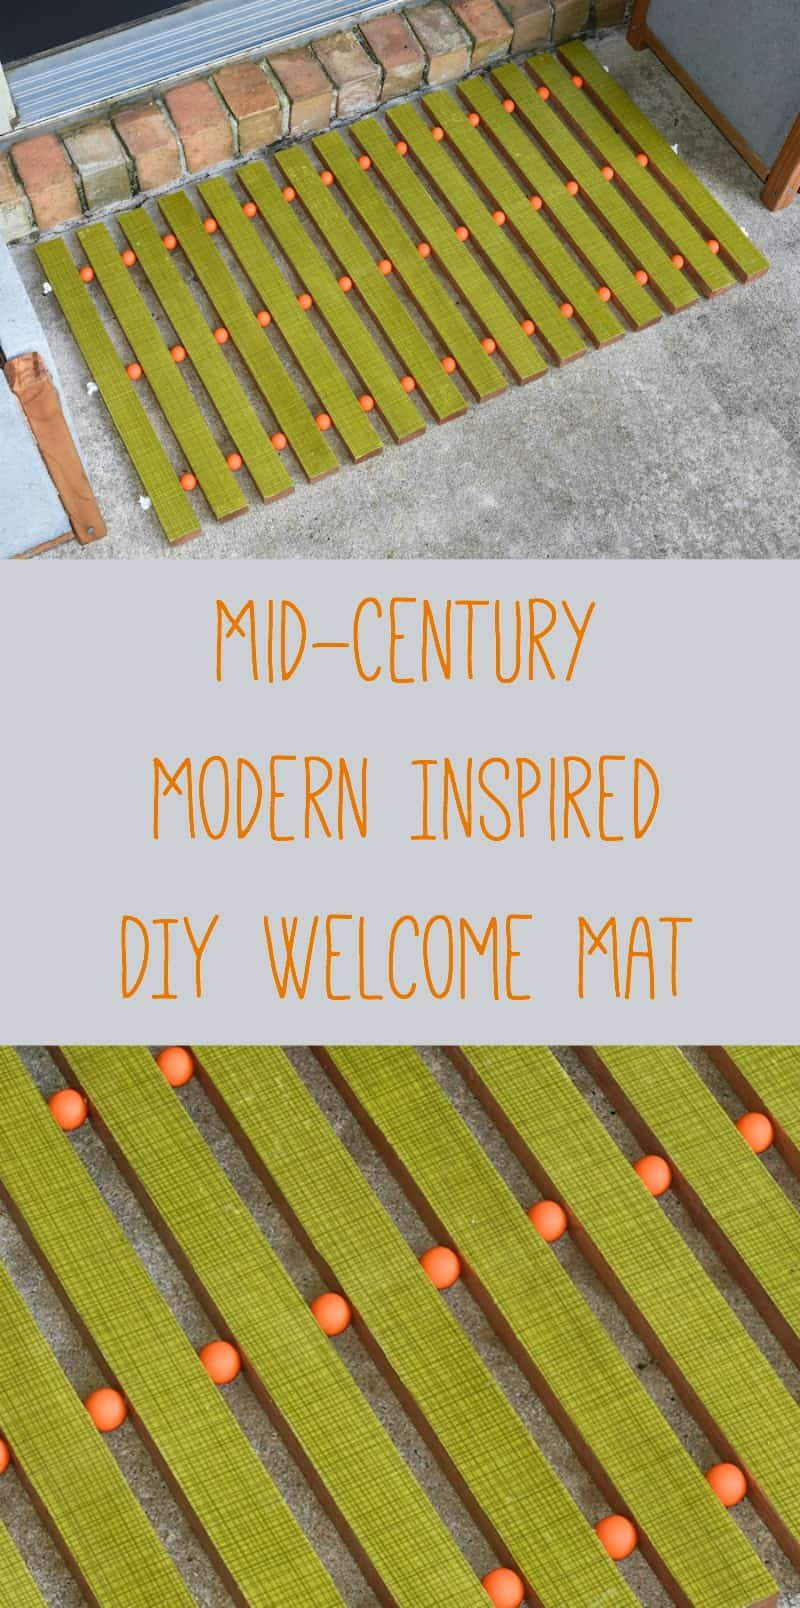 Make a mid-century inspired DIY welcome mat using wood slats and your favorite retro fabric! So easy and very unique.